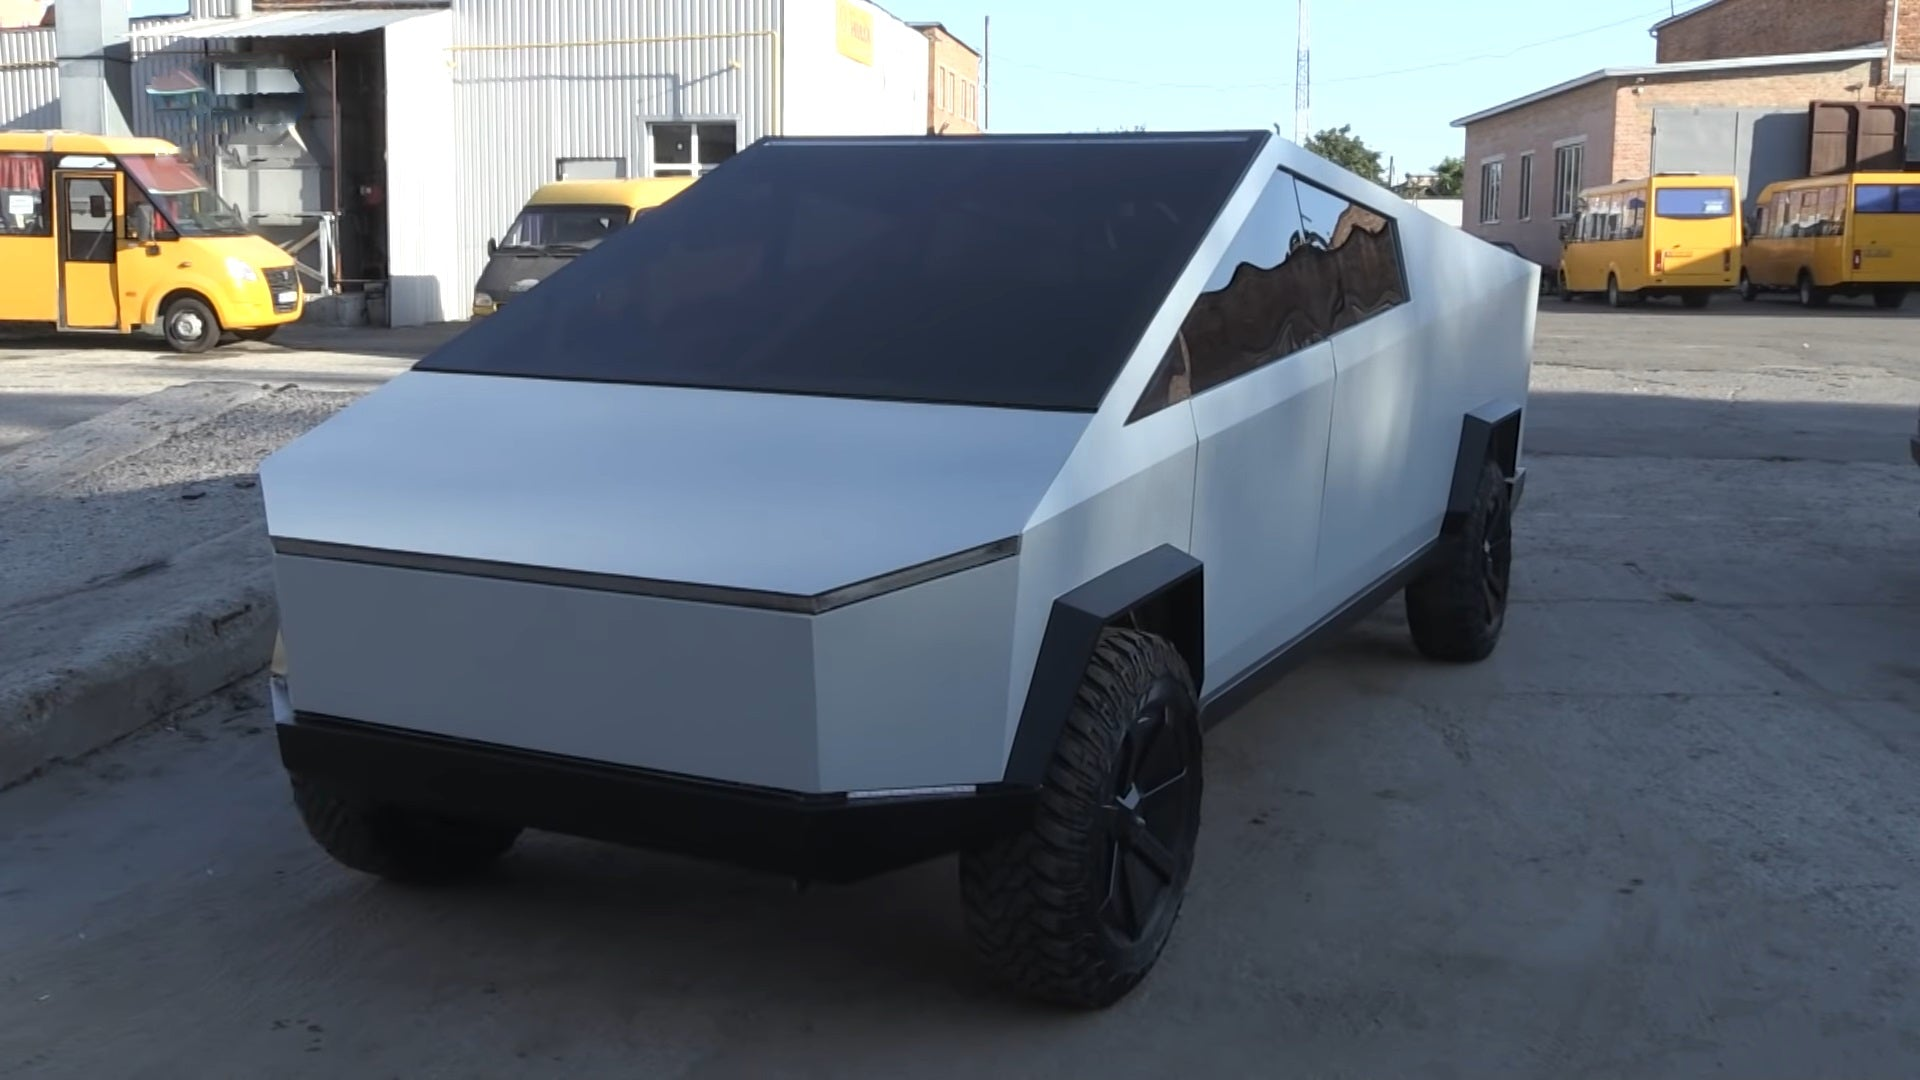 Tesla Fan Built The First Cybertruck Replica in Ukraine